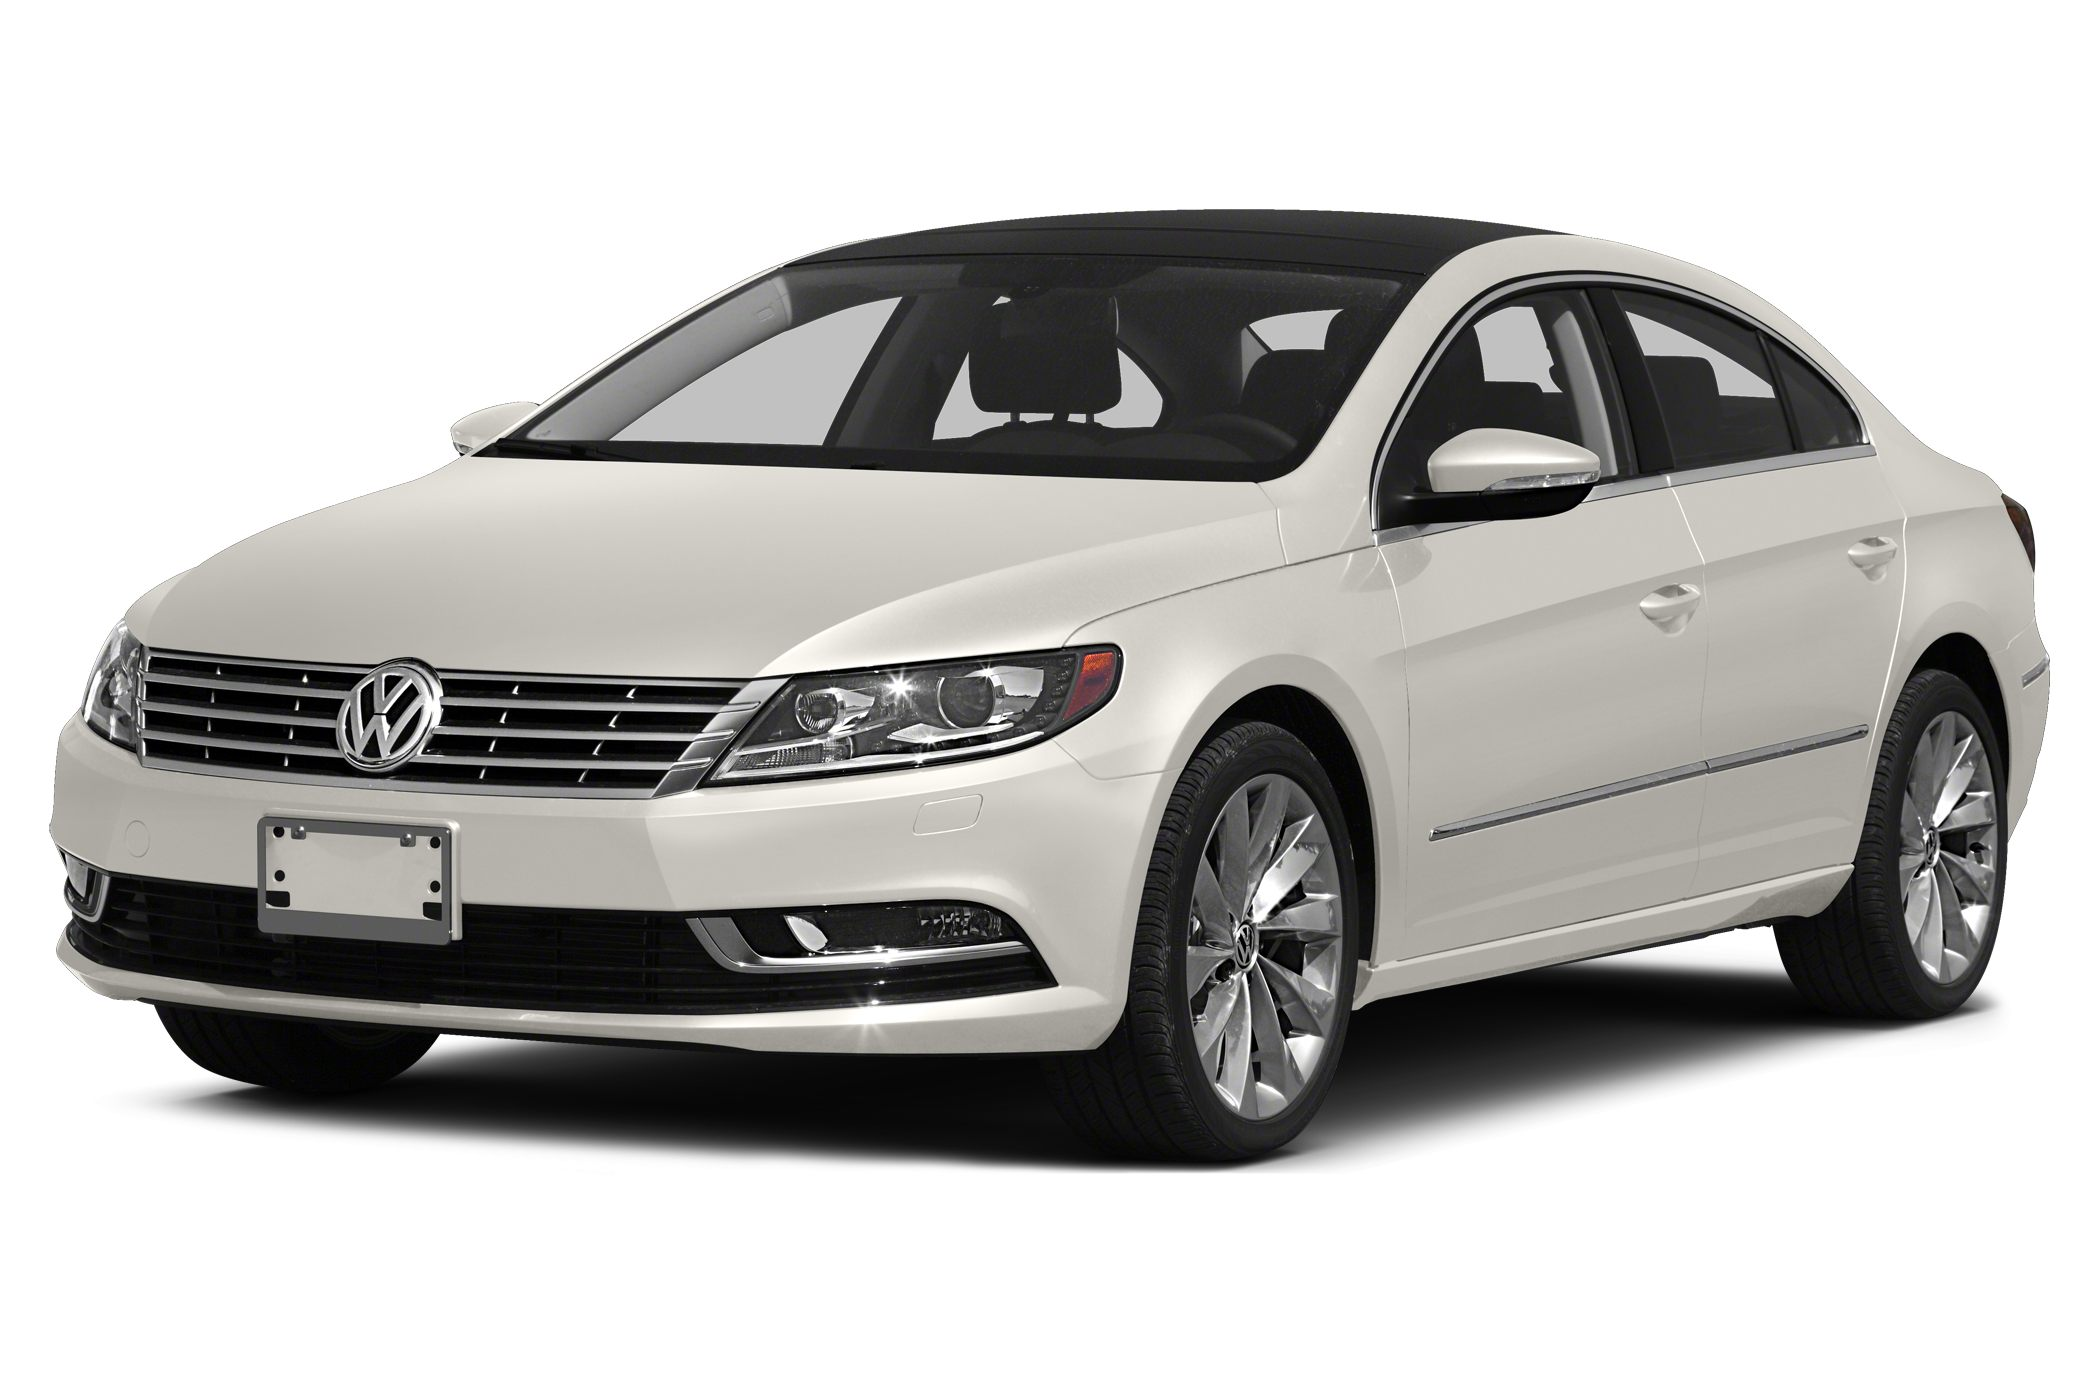 2015 Volkswagen CC 2.0T Sport Sedan for sale in Sterling for $32,330 with 10 miles.